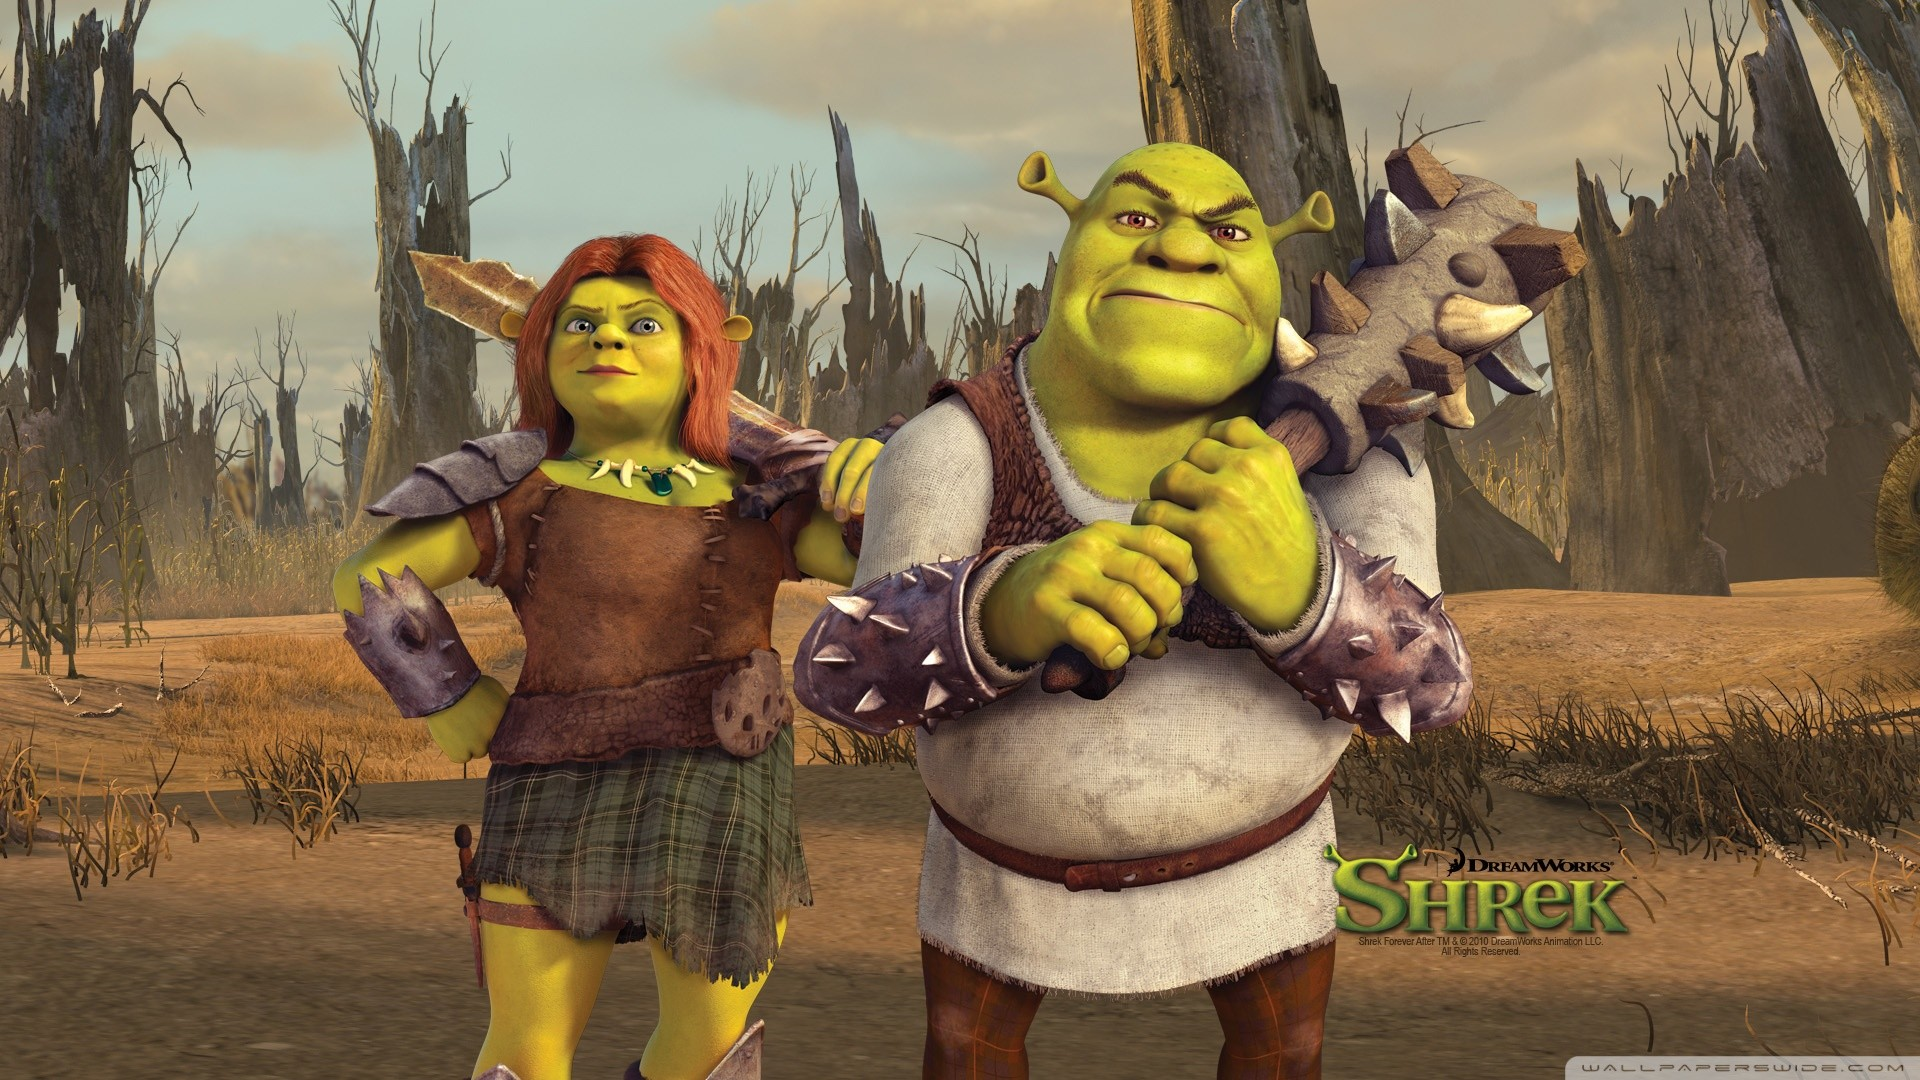 Fiona Wallpapers Shrek 2 69 Images